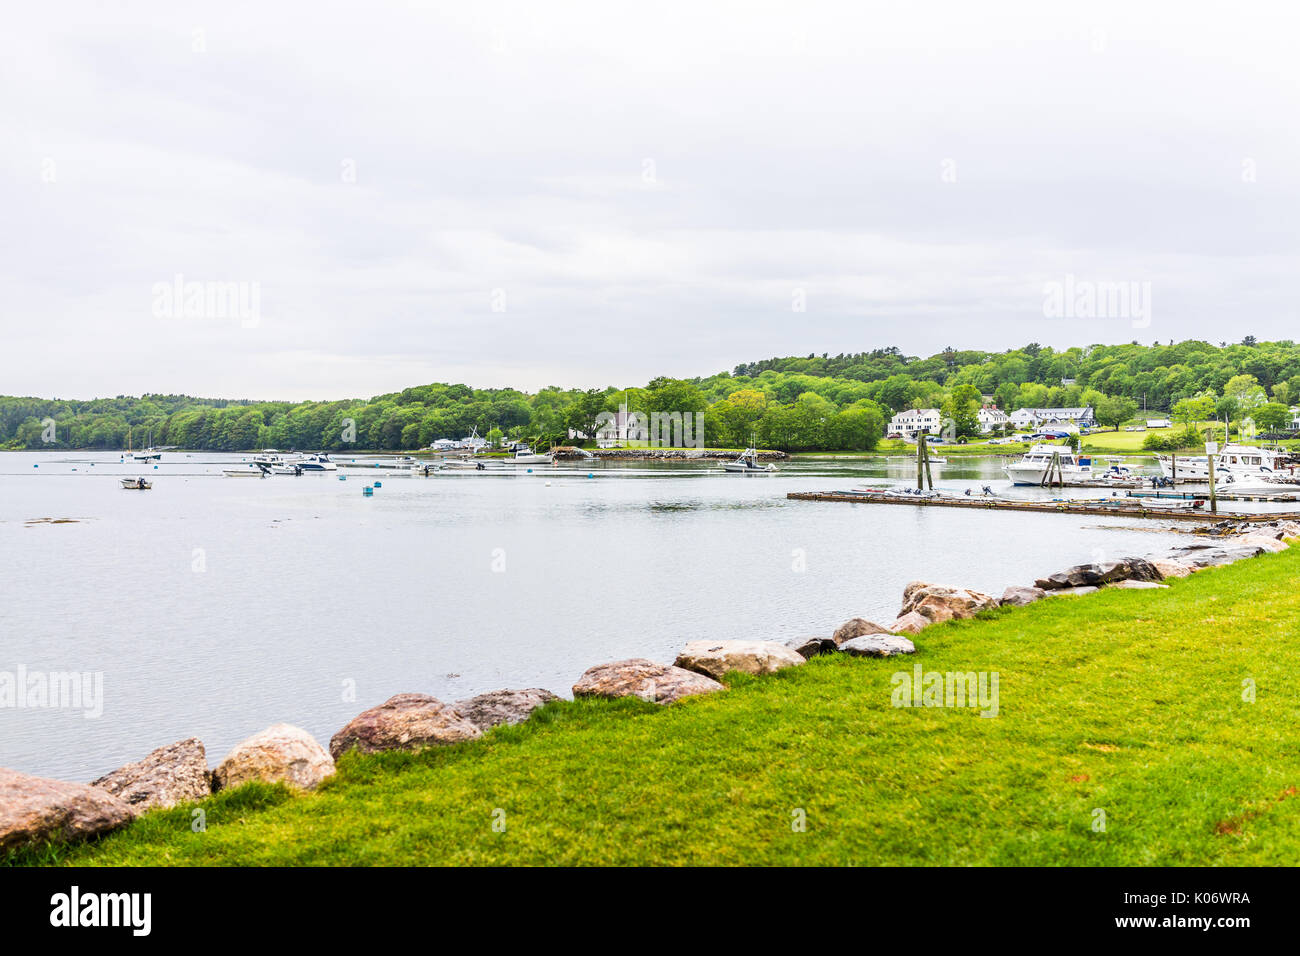 damariscotta women Welcome to the damariscotta region this is an exciting place to live, to work, and to visit we believe our region represents the best that maine has to offer with its rich history and magnificent beauty.